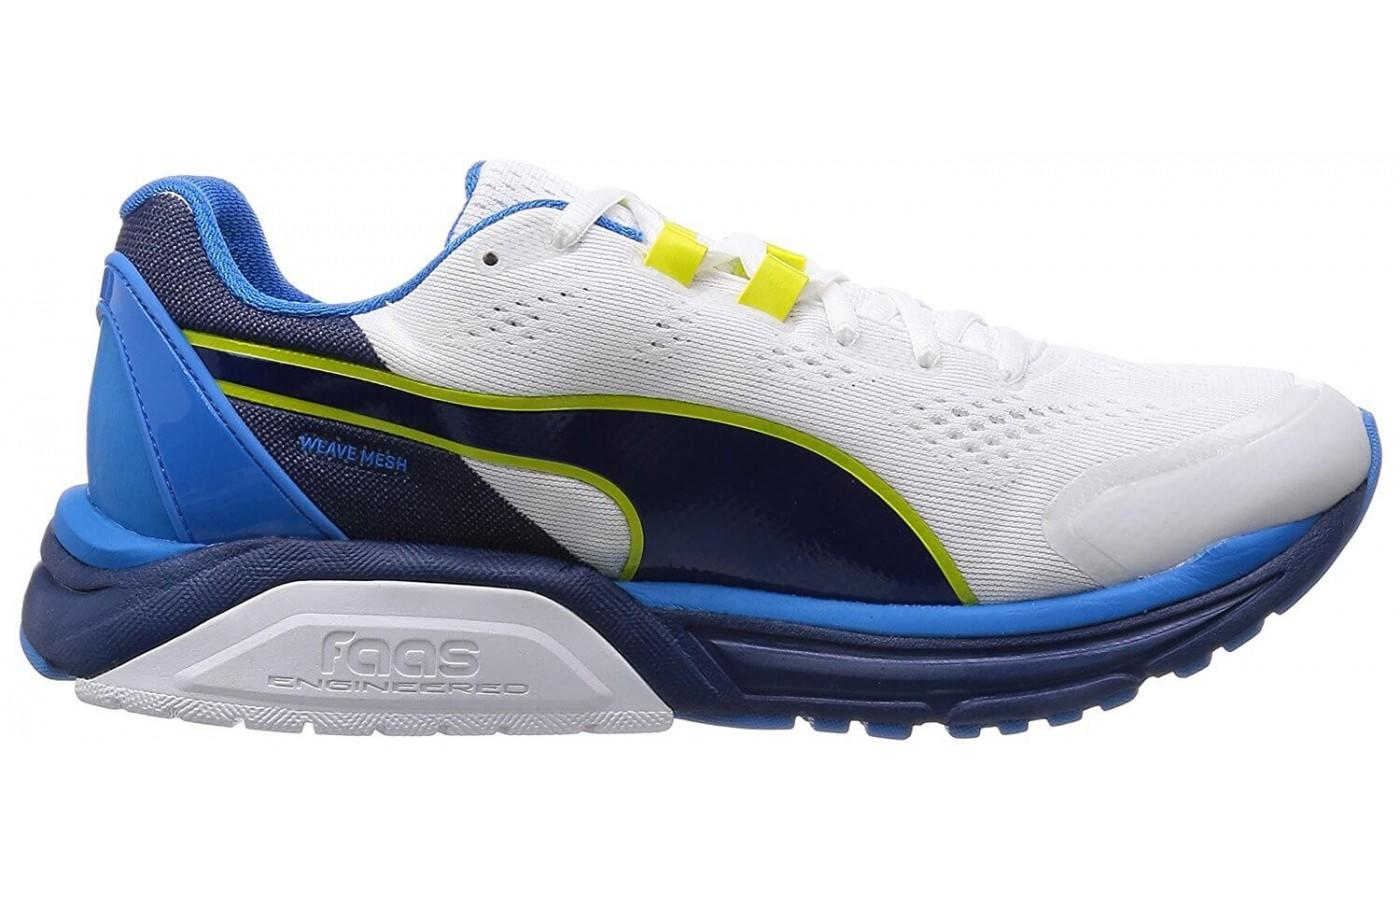 Dual density mid sole foam provides great stability and arch support.